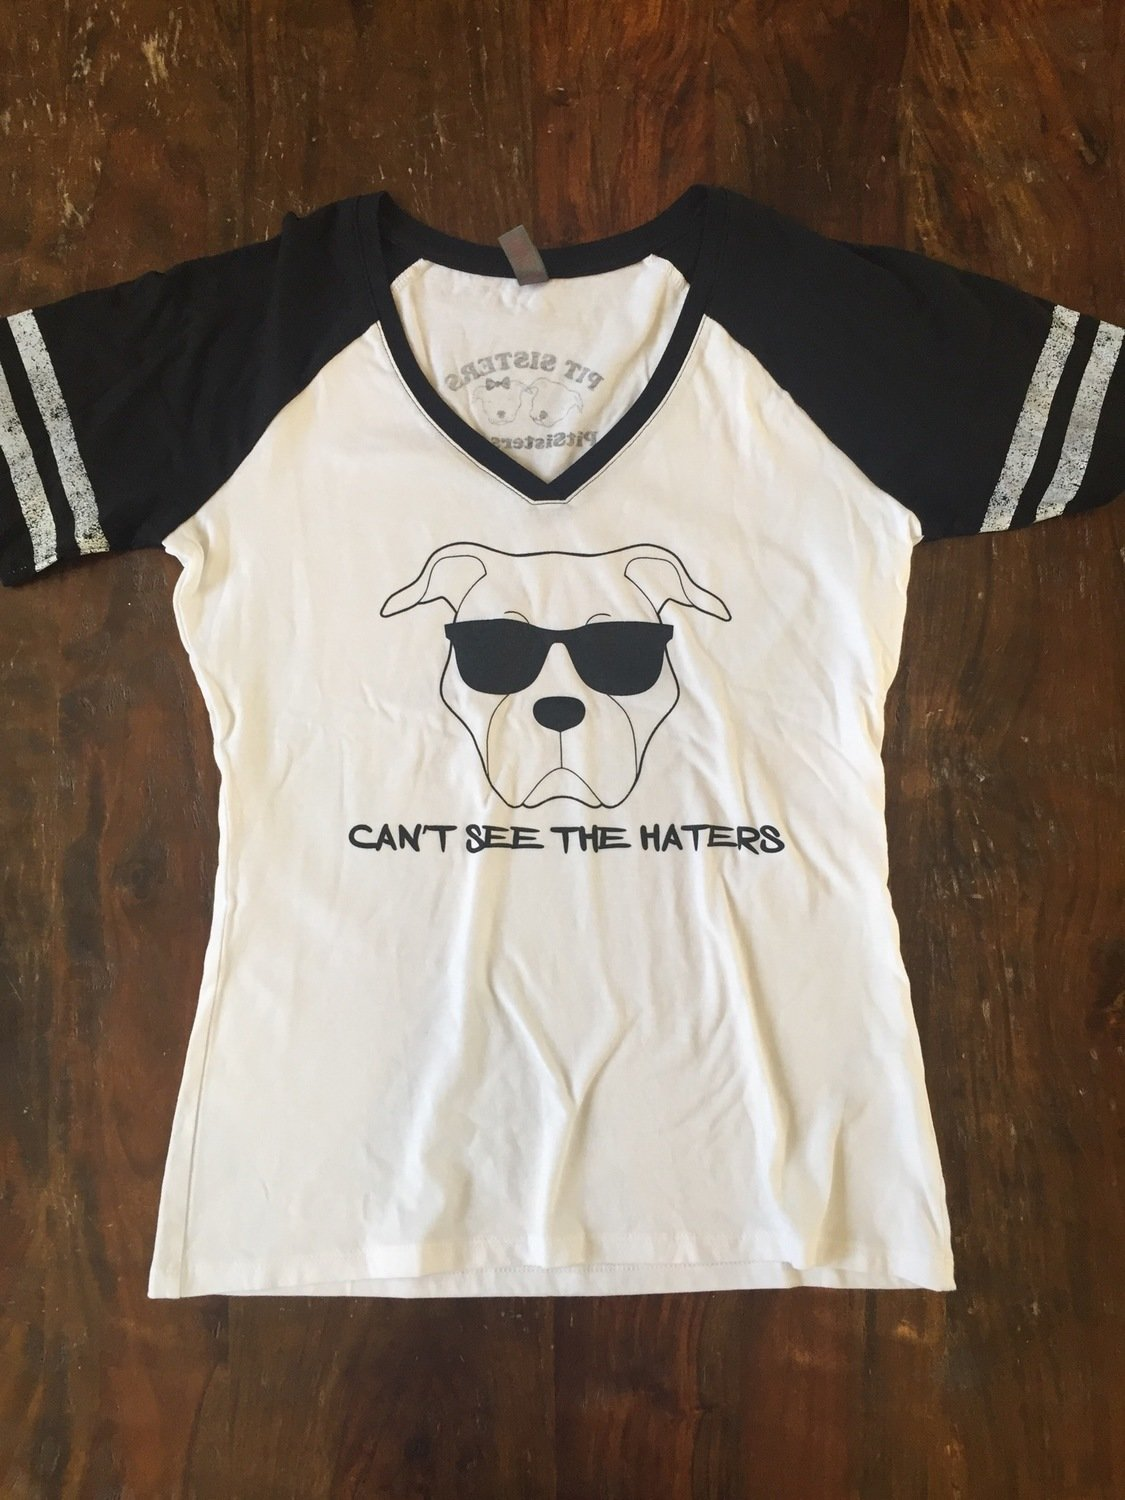 Ladies Vneck- Can't See the Haters- White and Black with Black writing - Medium